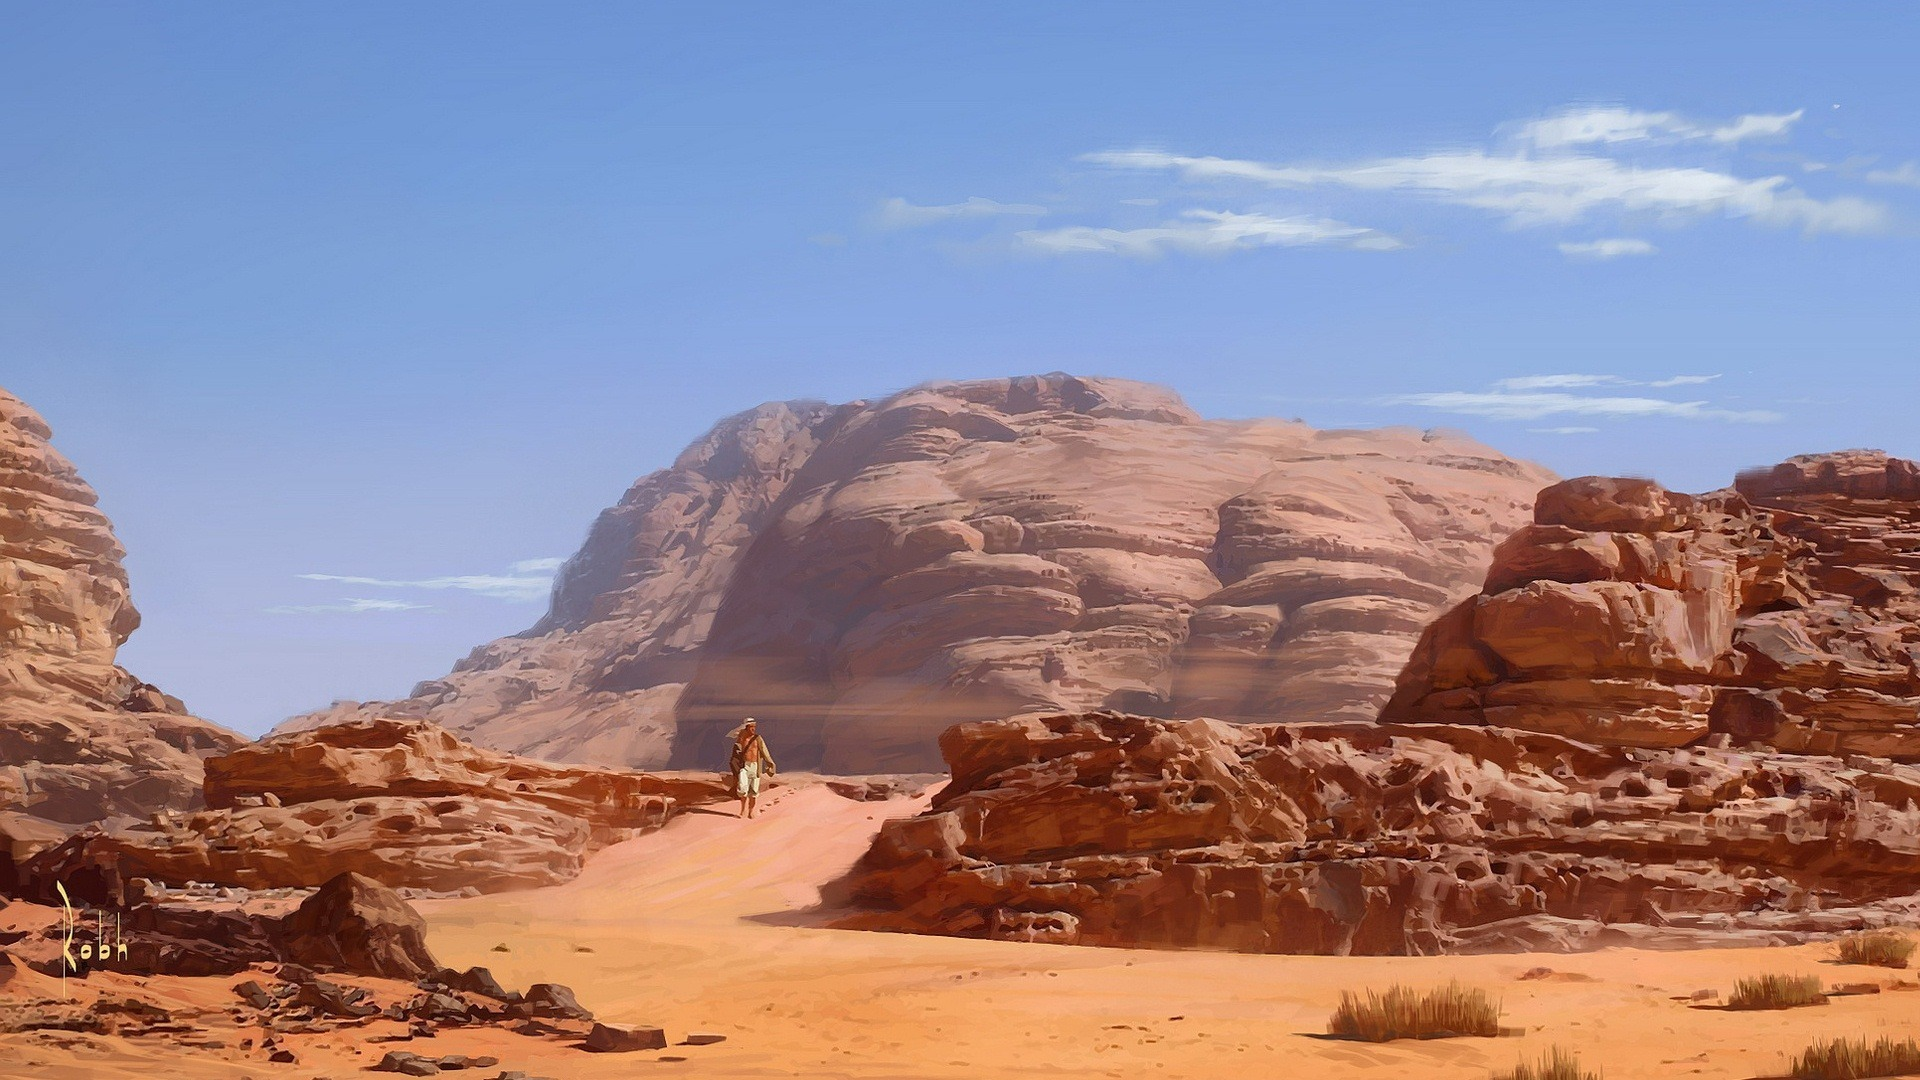 desert wallpapers high quality - photo #18